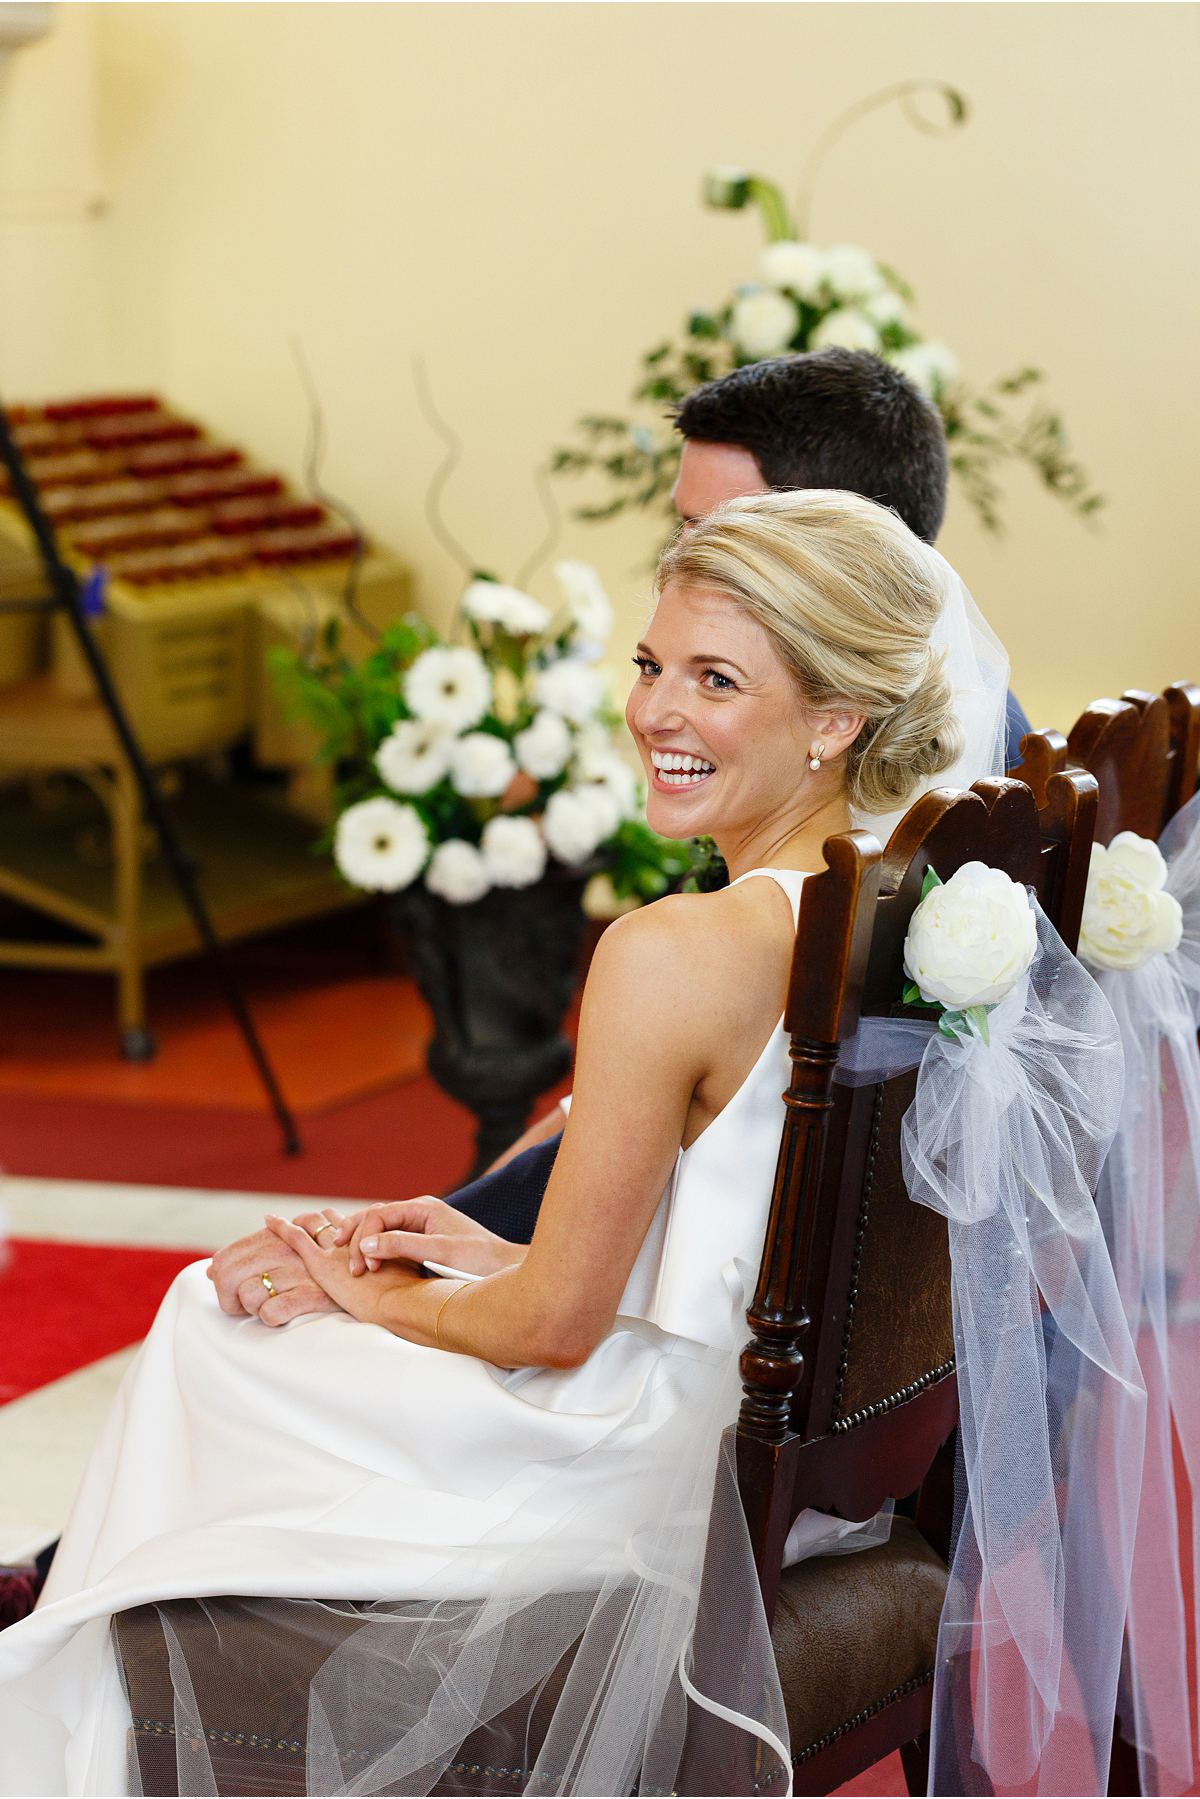 beaming bride glances over her shoulder during wedding cerrmony